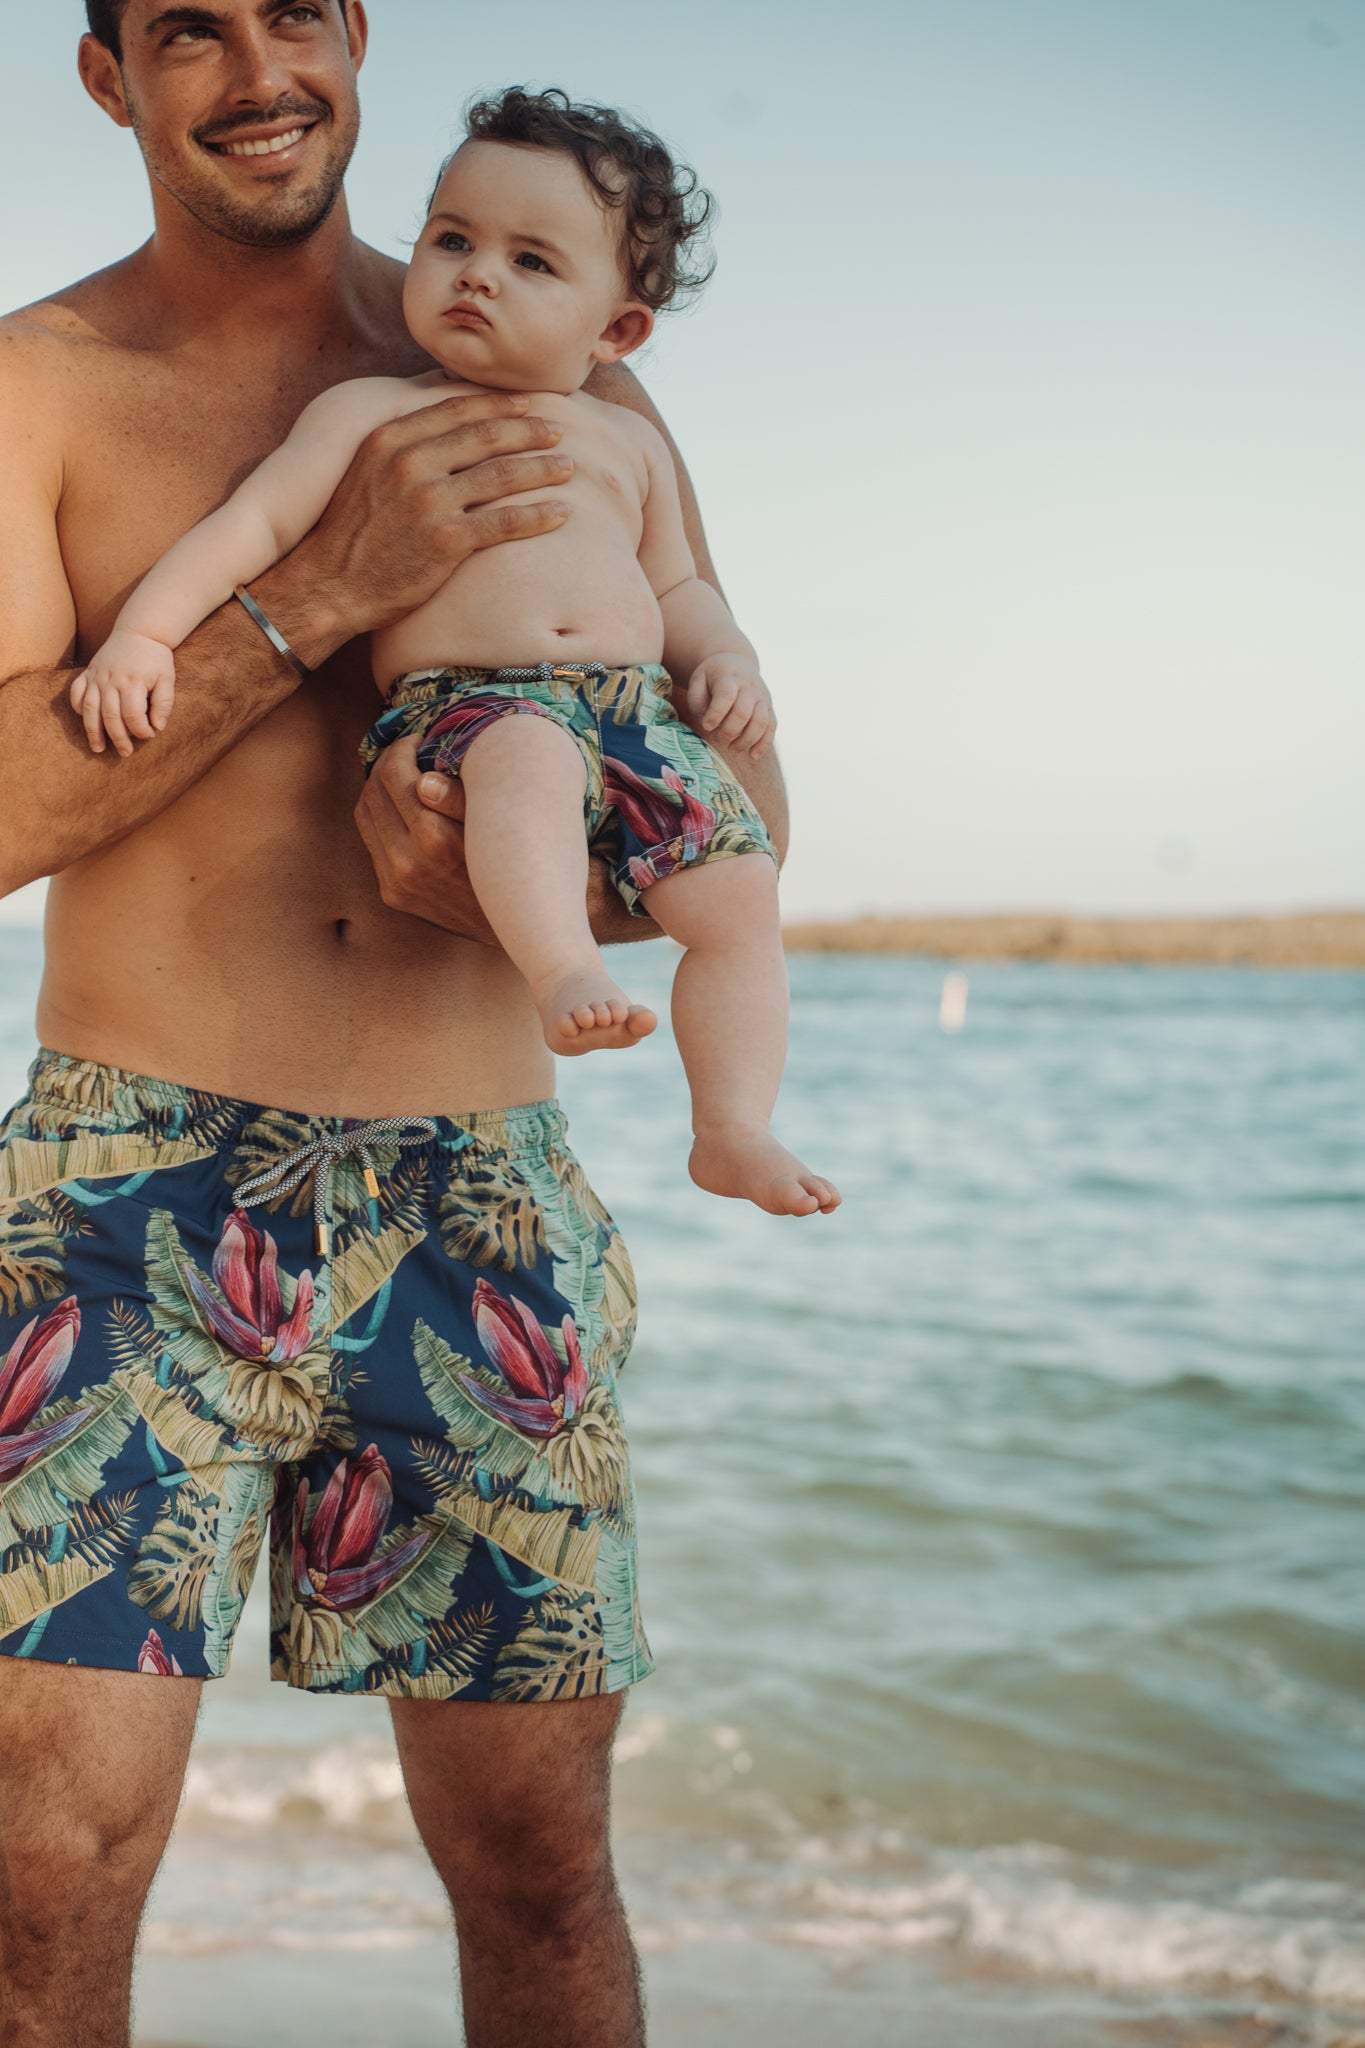 Model adult holding a baby both wearing swim trunk with the ocean background